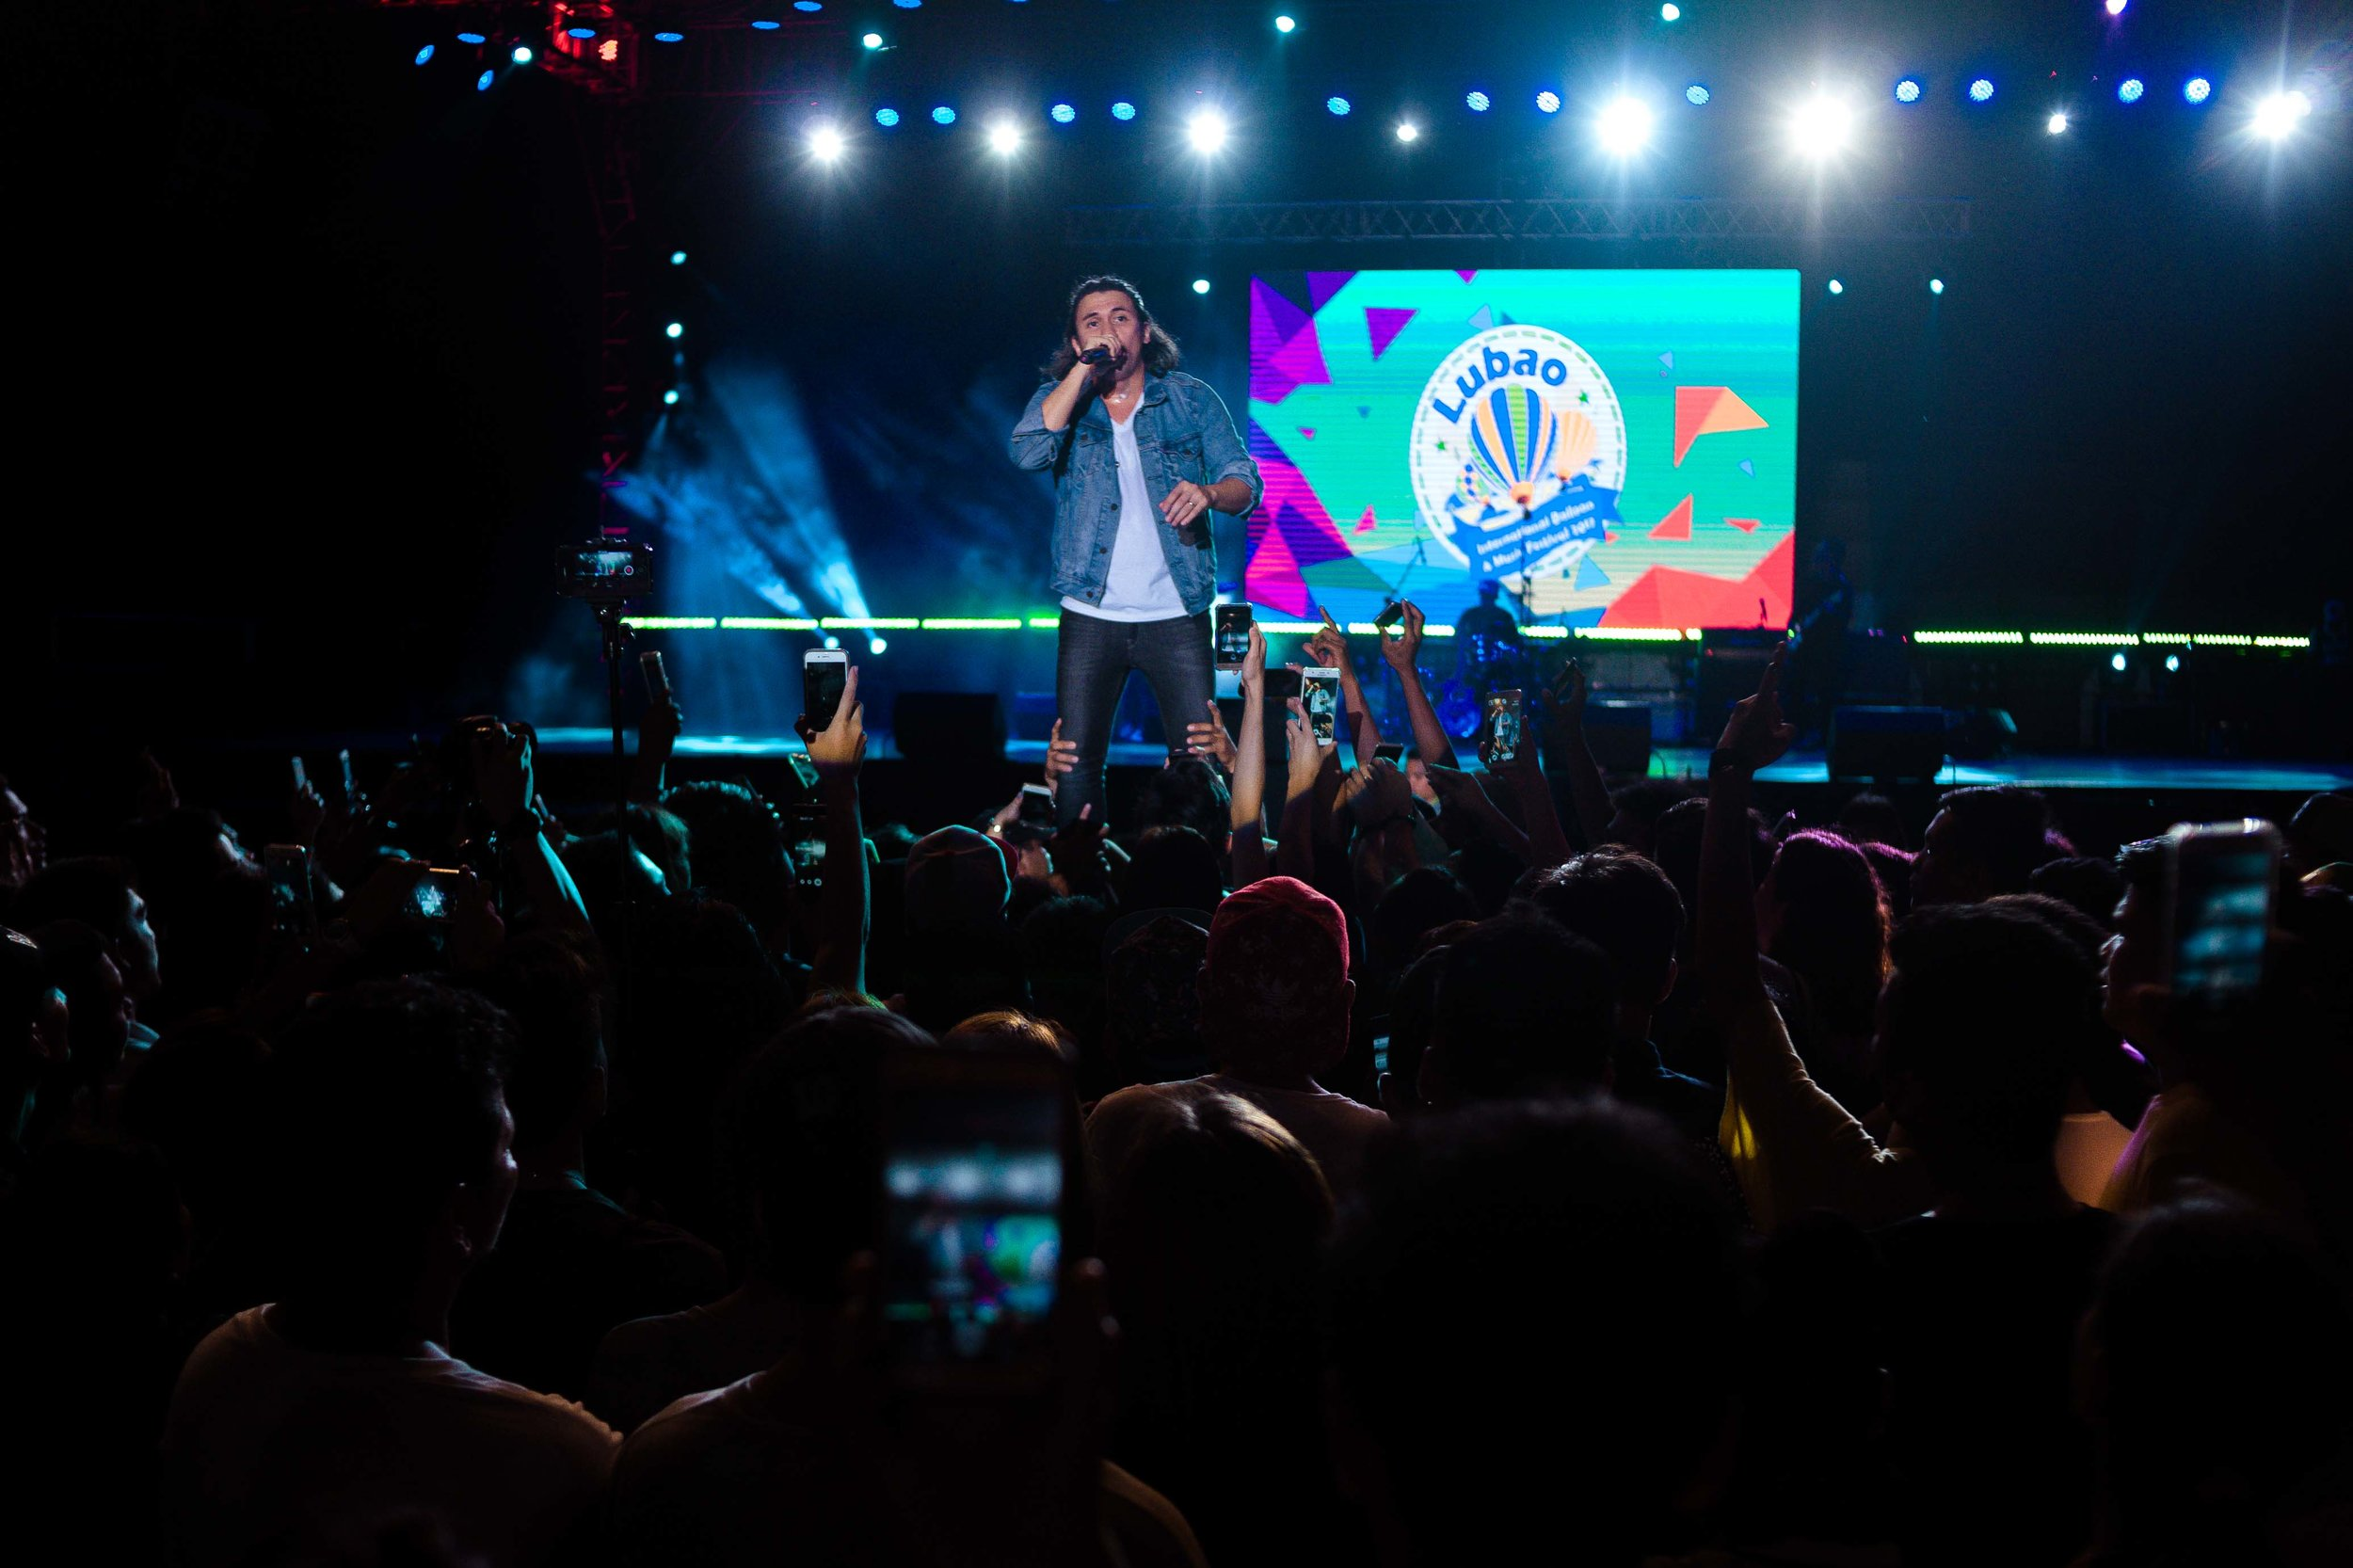 Millennials rocked each night with a star-studded concert of musical artists and celebrities such as James Reid, Sponge Cola and the Eraserheads, among others. Kids were not left out, as they enjoyed camel riding, rabbit feeding and bird-watching. Each night of this four day event was capped off with a hot air balloon night glow and a grand fireworks display.